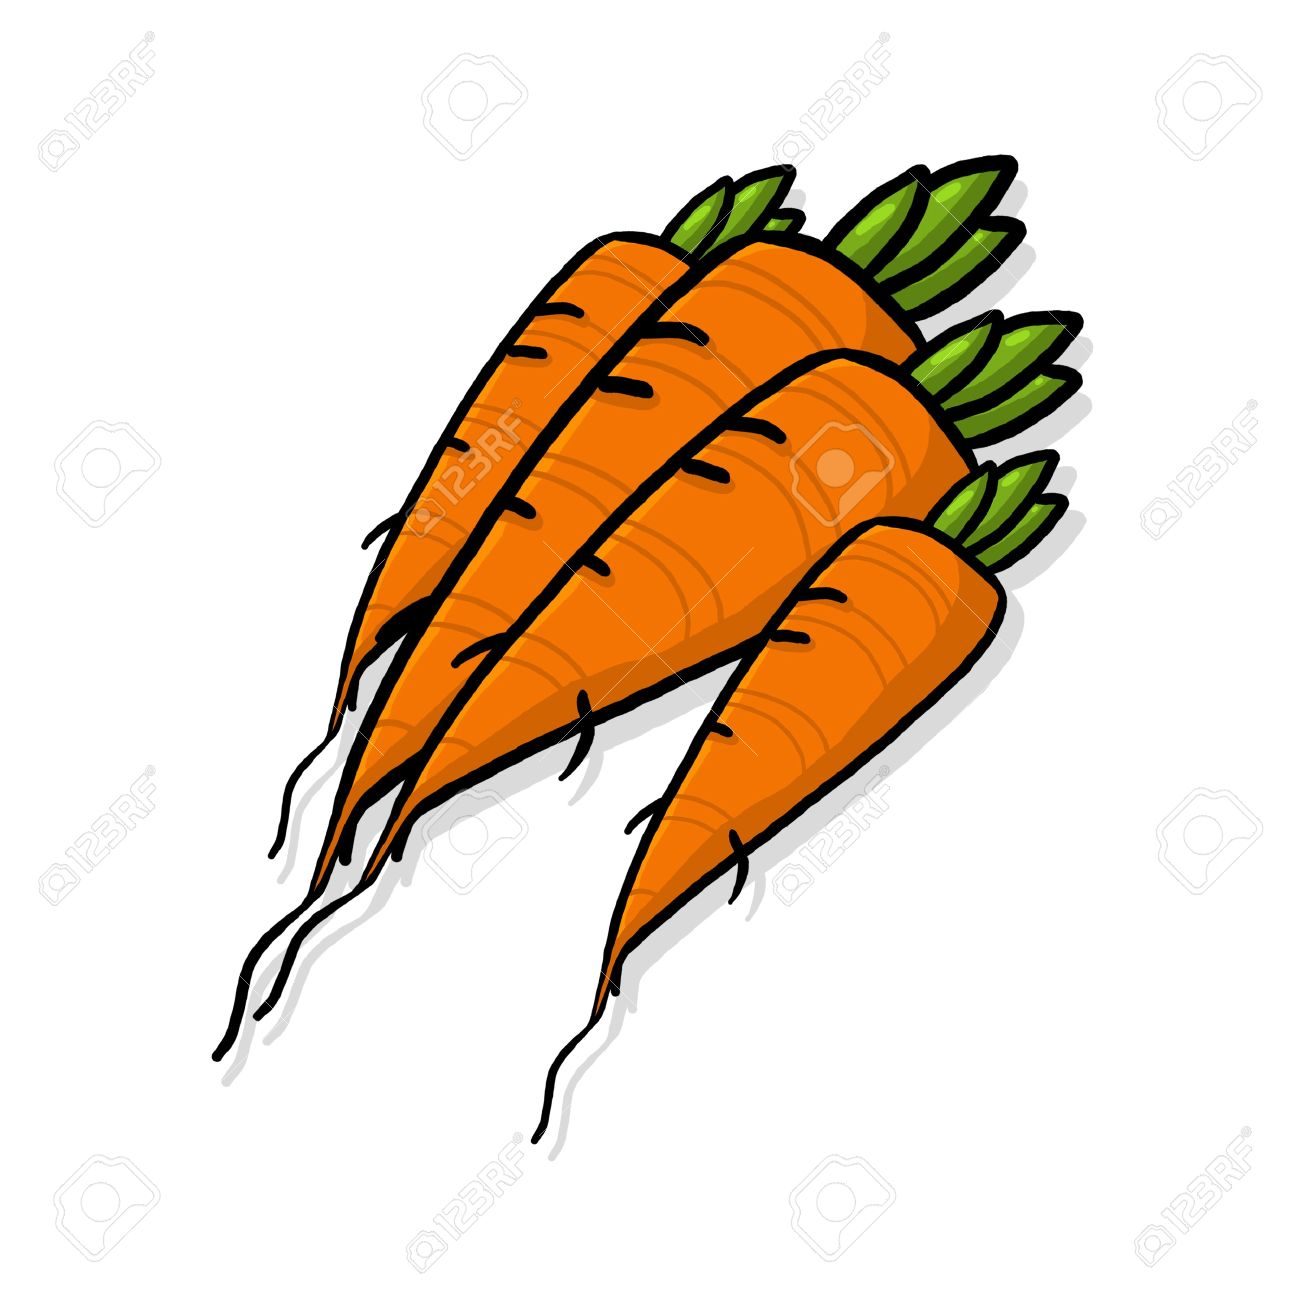 1300x1300 Bunch Of Carrots Bundle Of Carrots Drawing Fresh Carrots Root